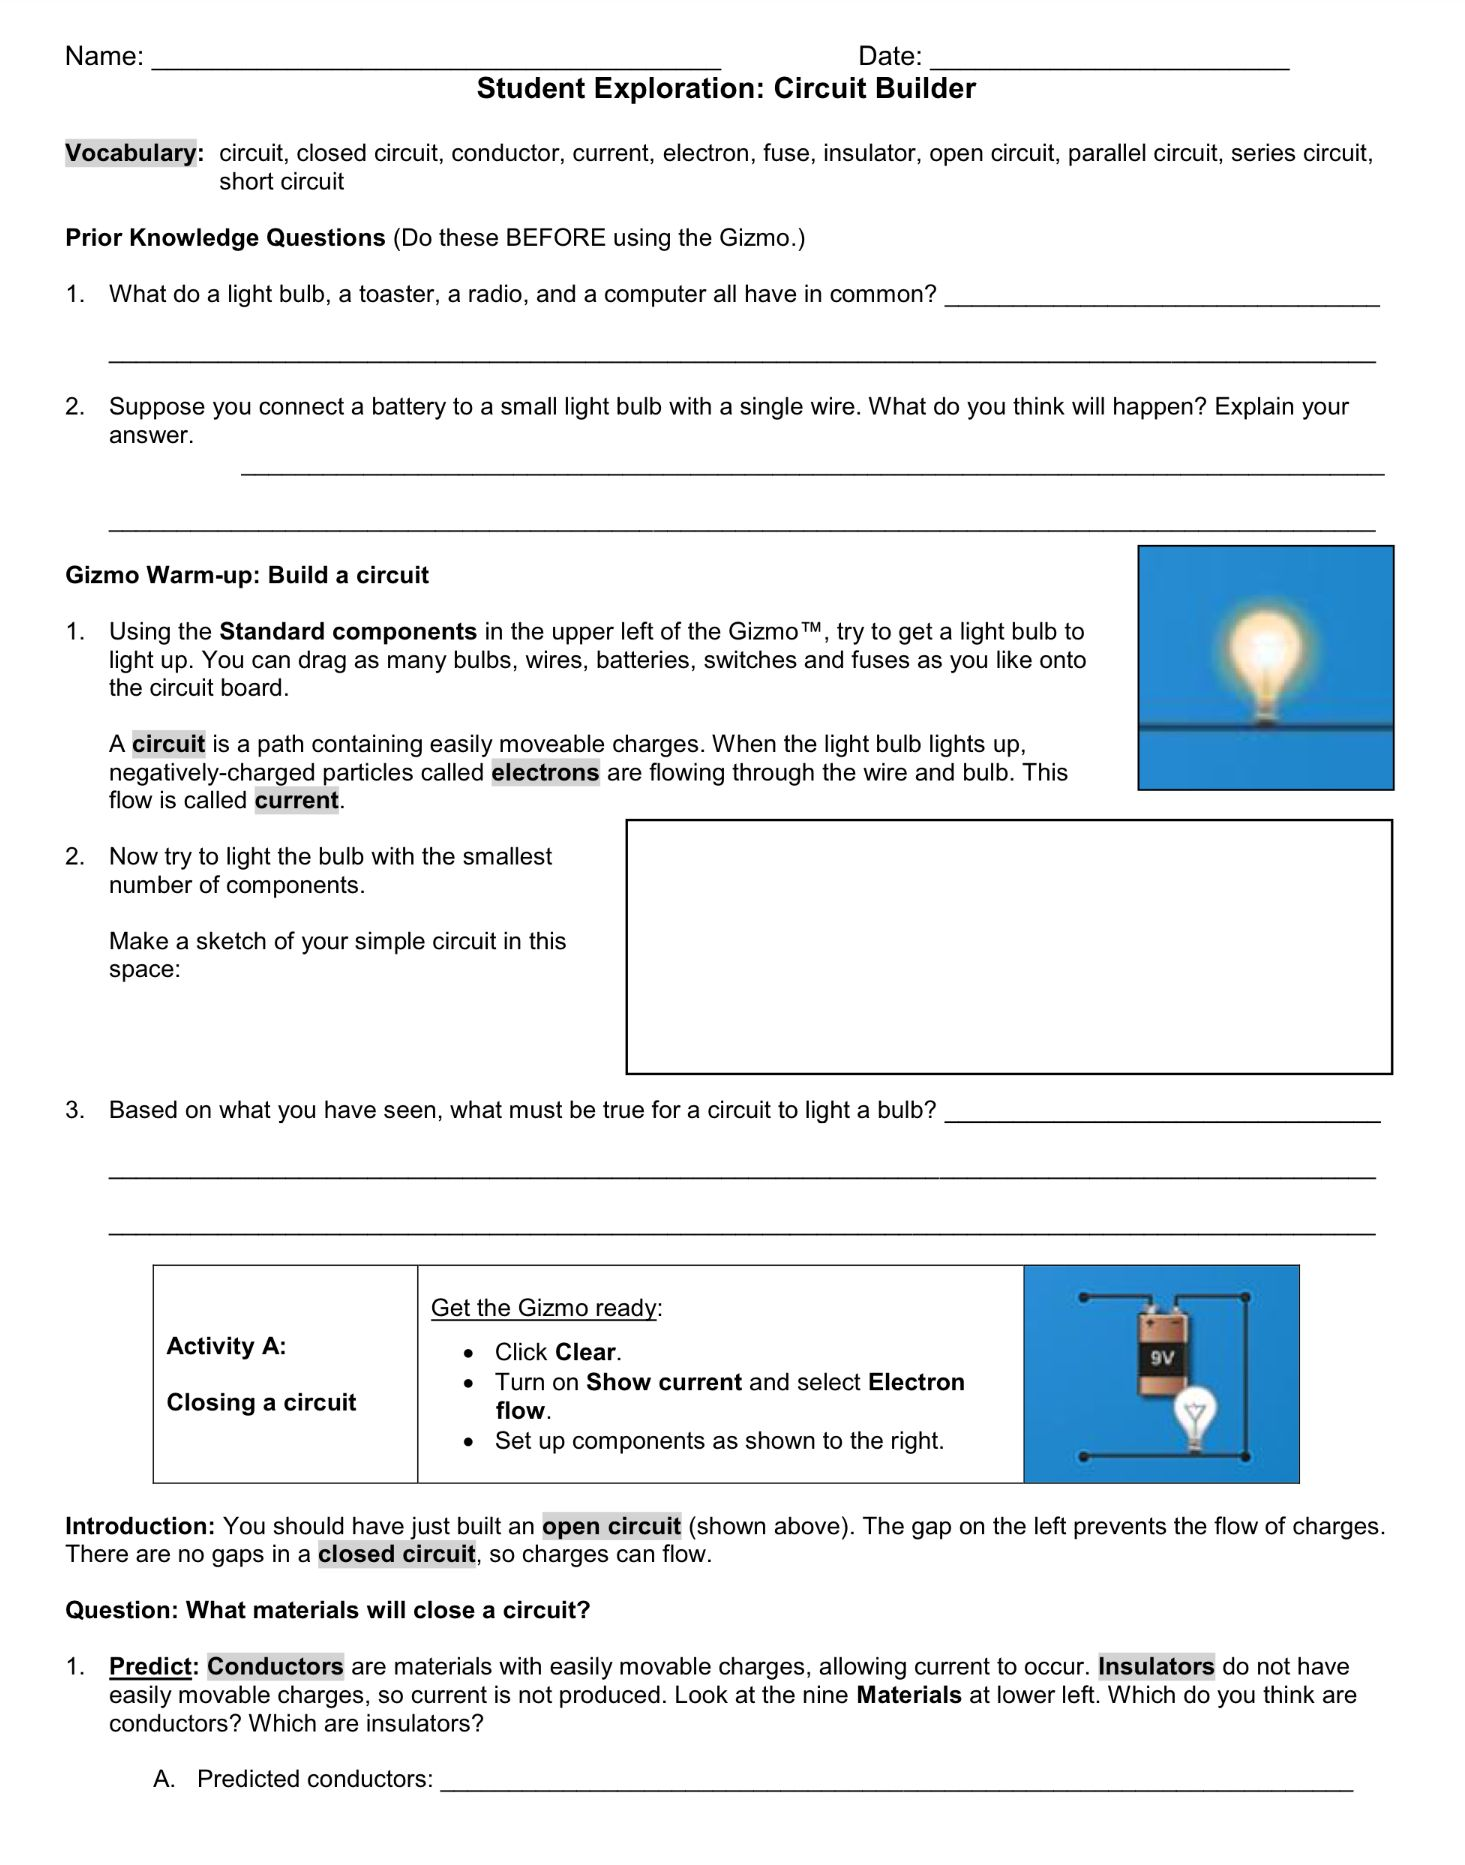 Circuit Builder - Student Exploration Worksheet - Thursday ...